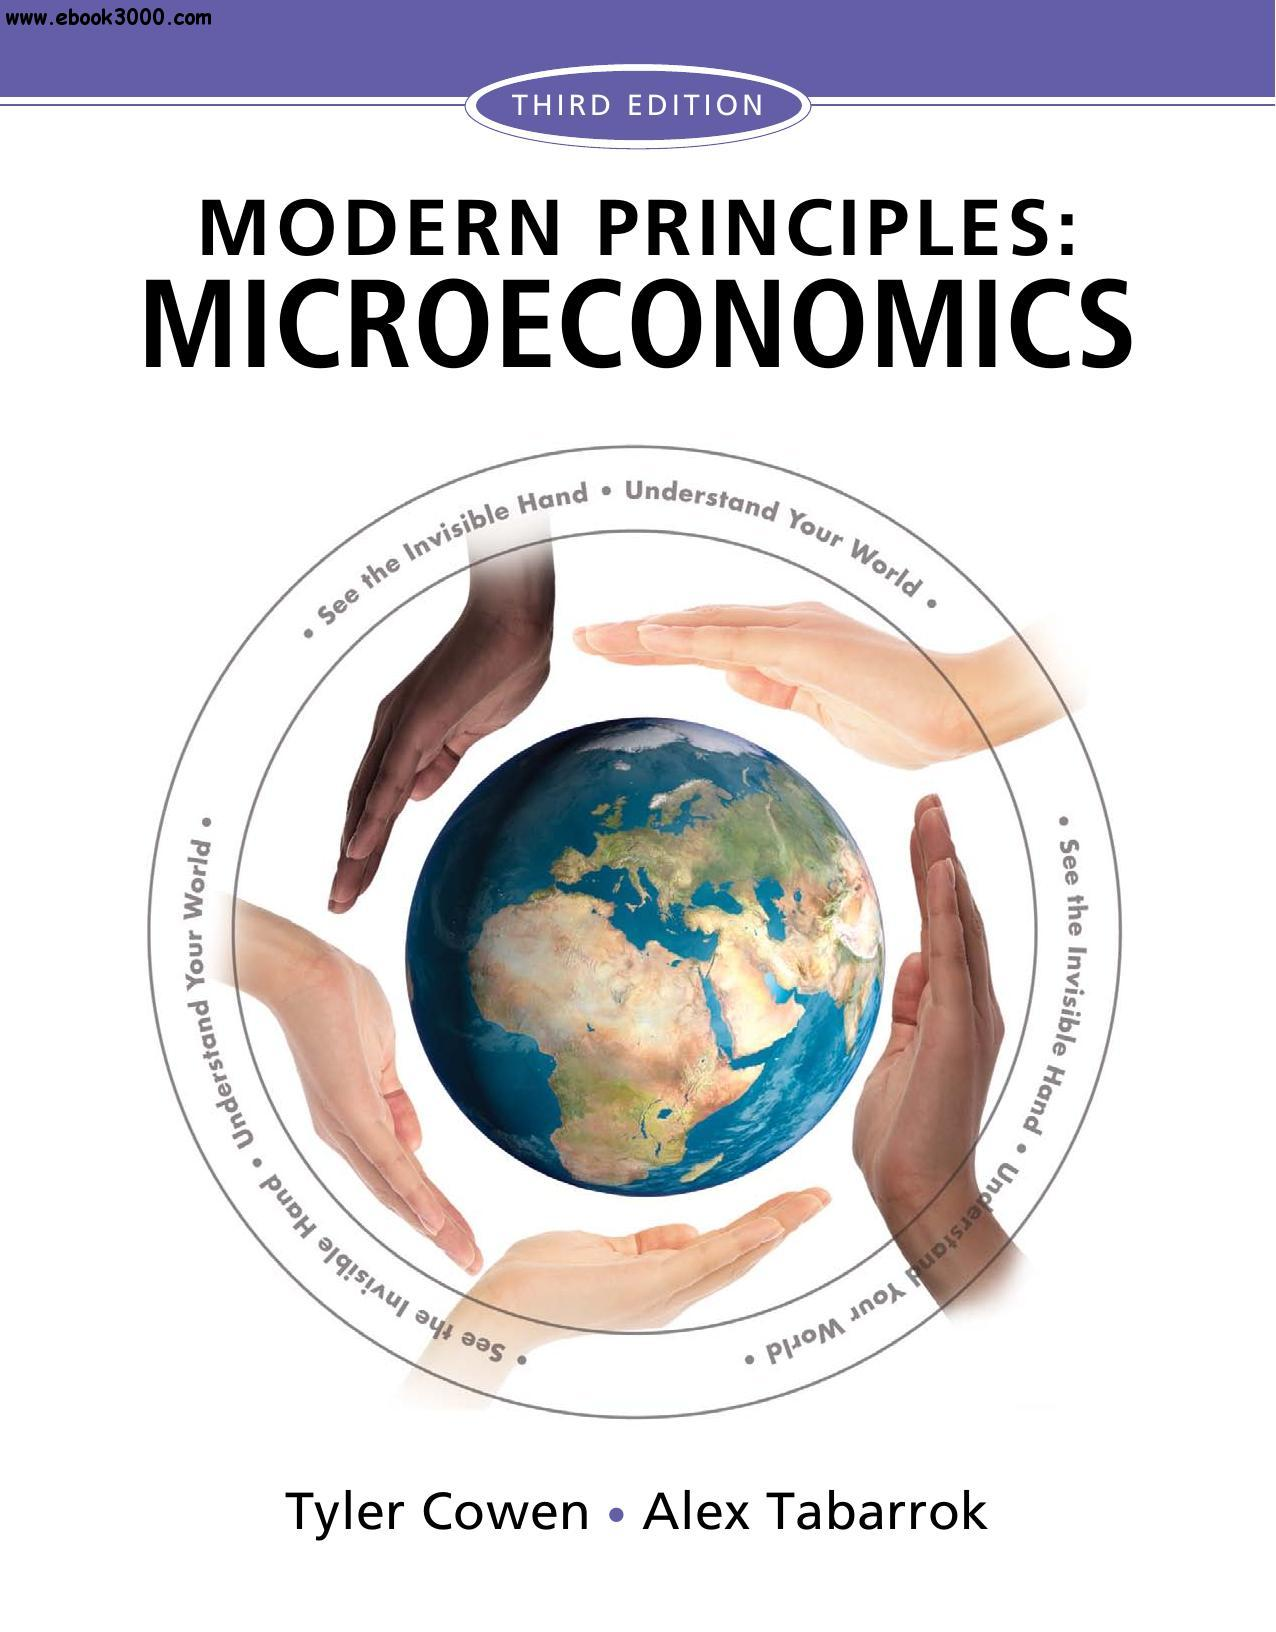 Modern Principles: Microeconomics, 3rd Edition